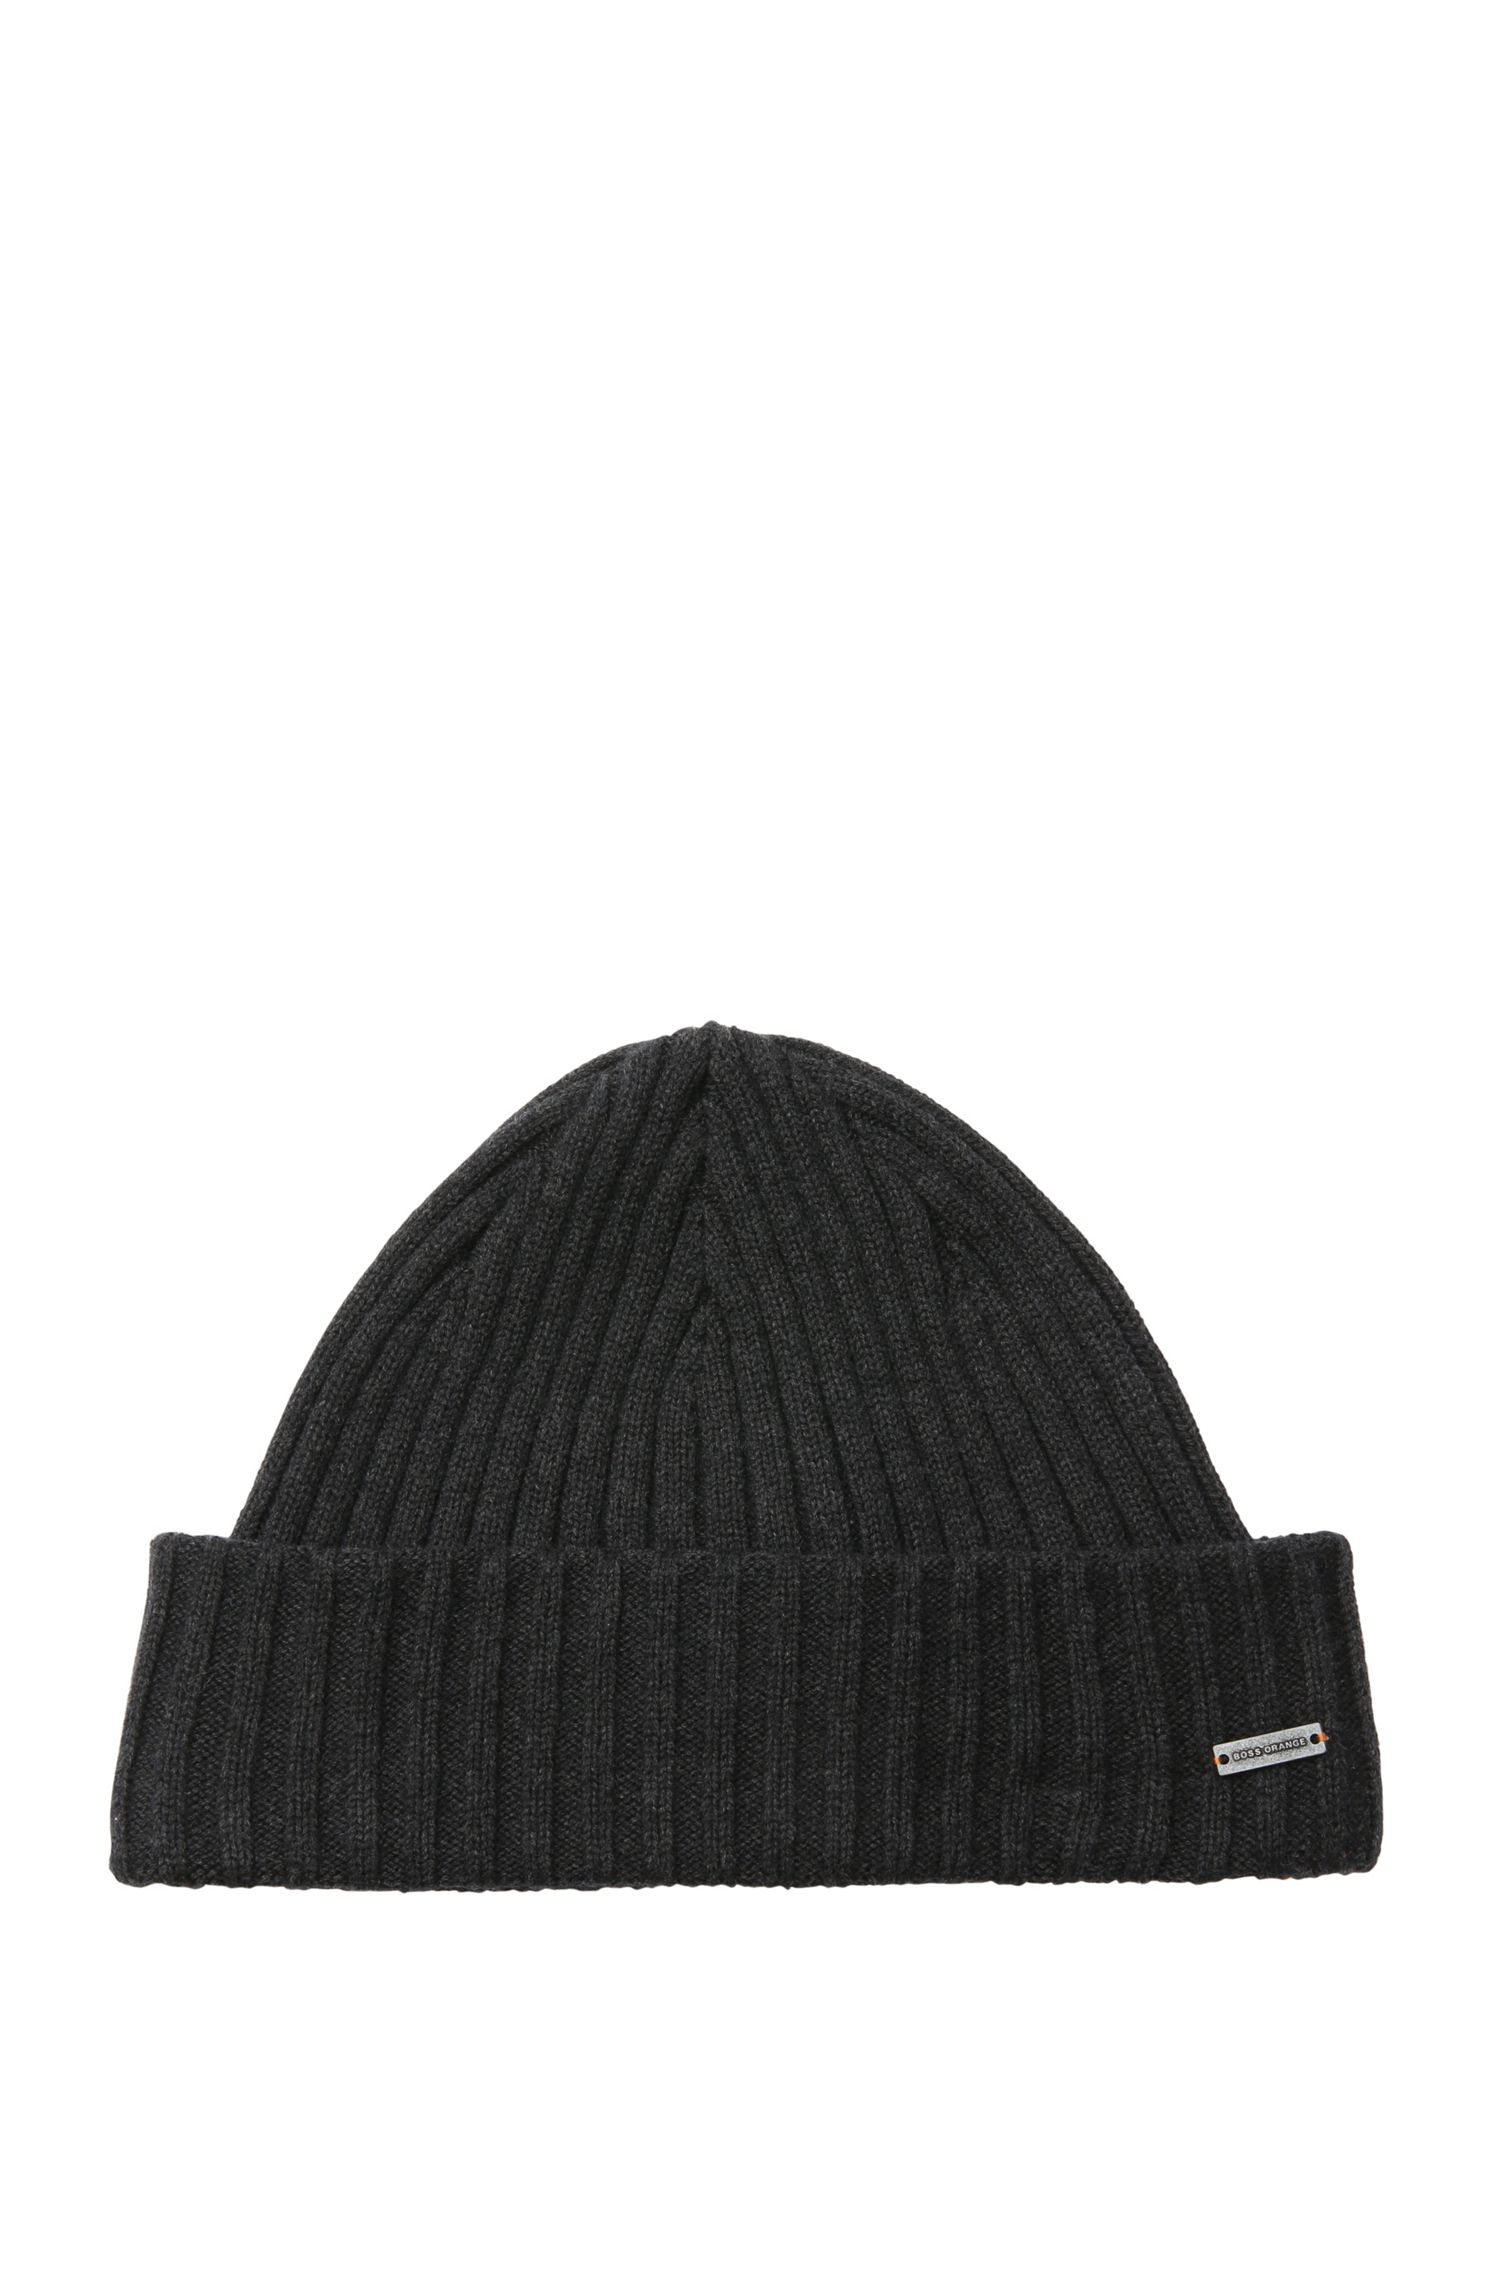 'Araffon' Hat in ribbed knit